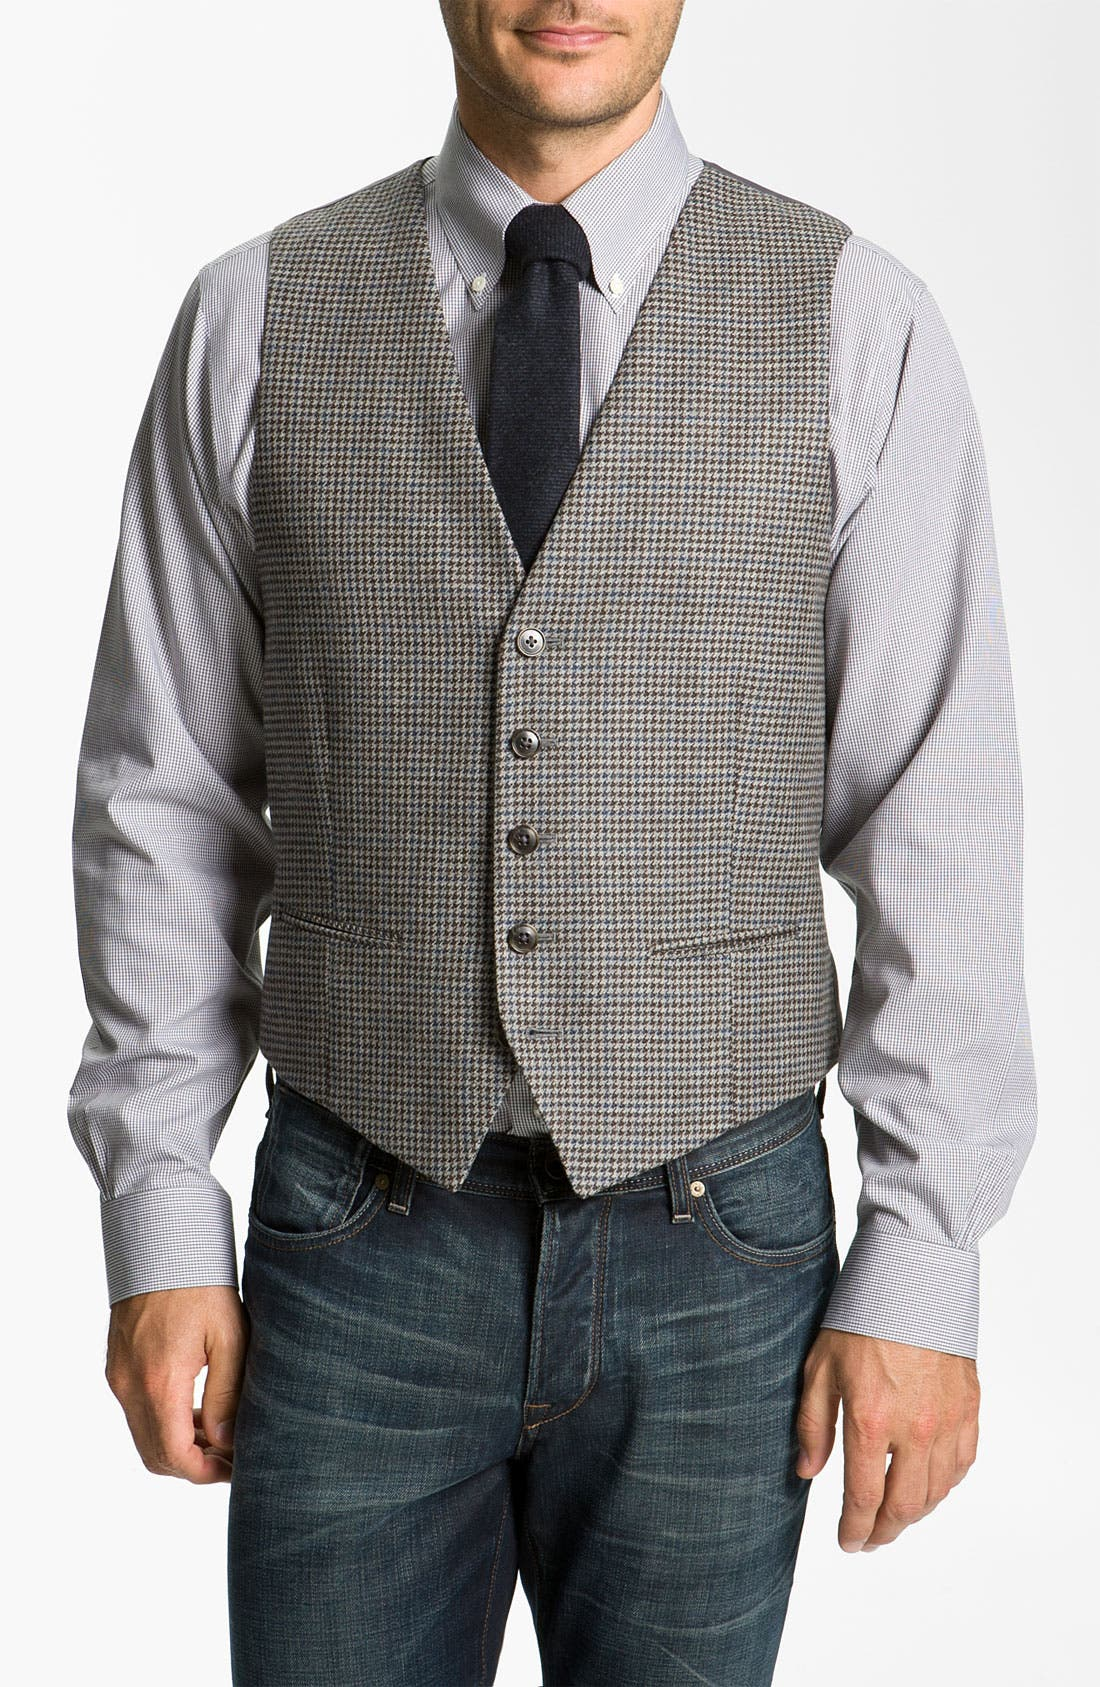 Alternate Image 1 Selected - John W. Nordstrom® Houndstooth Wool Vest